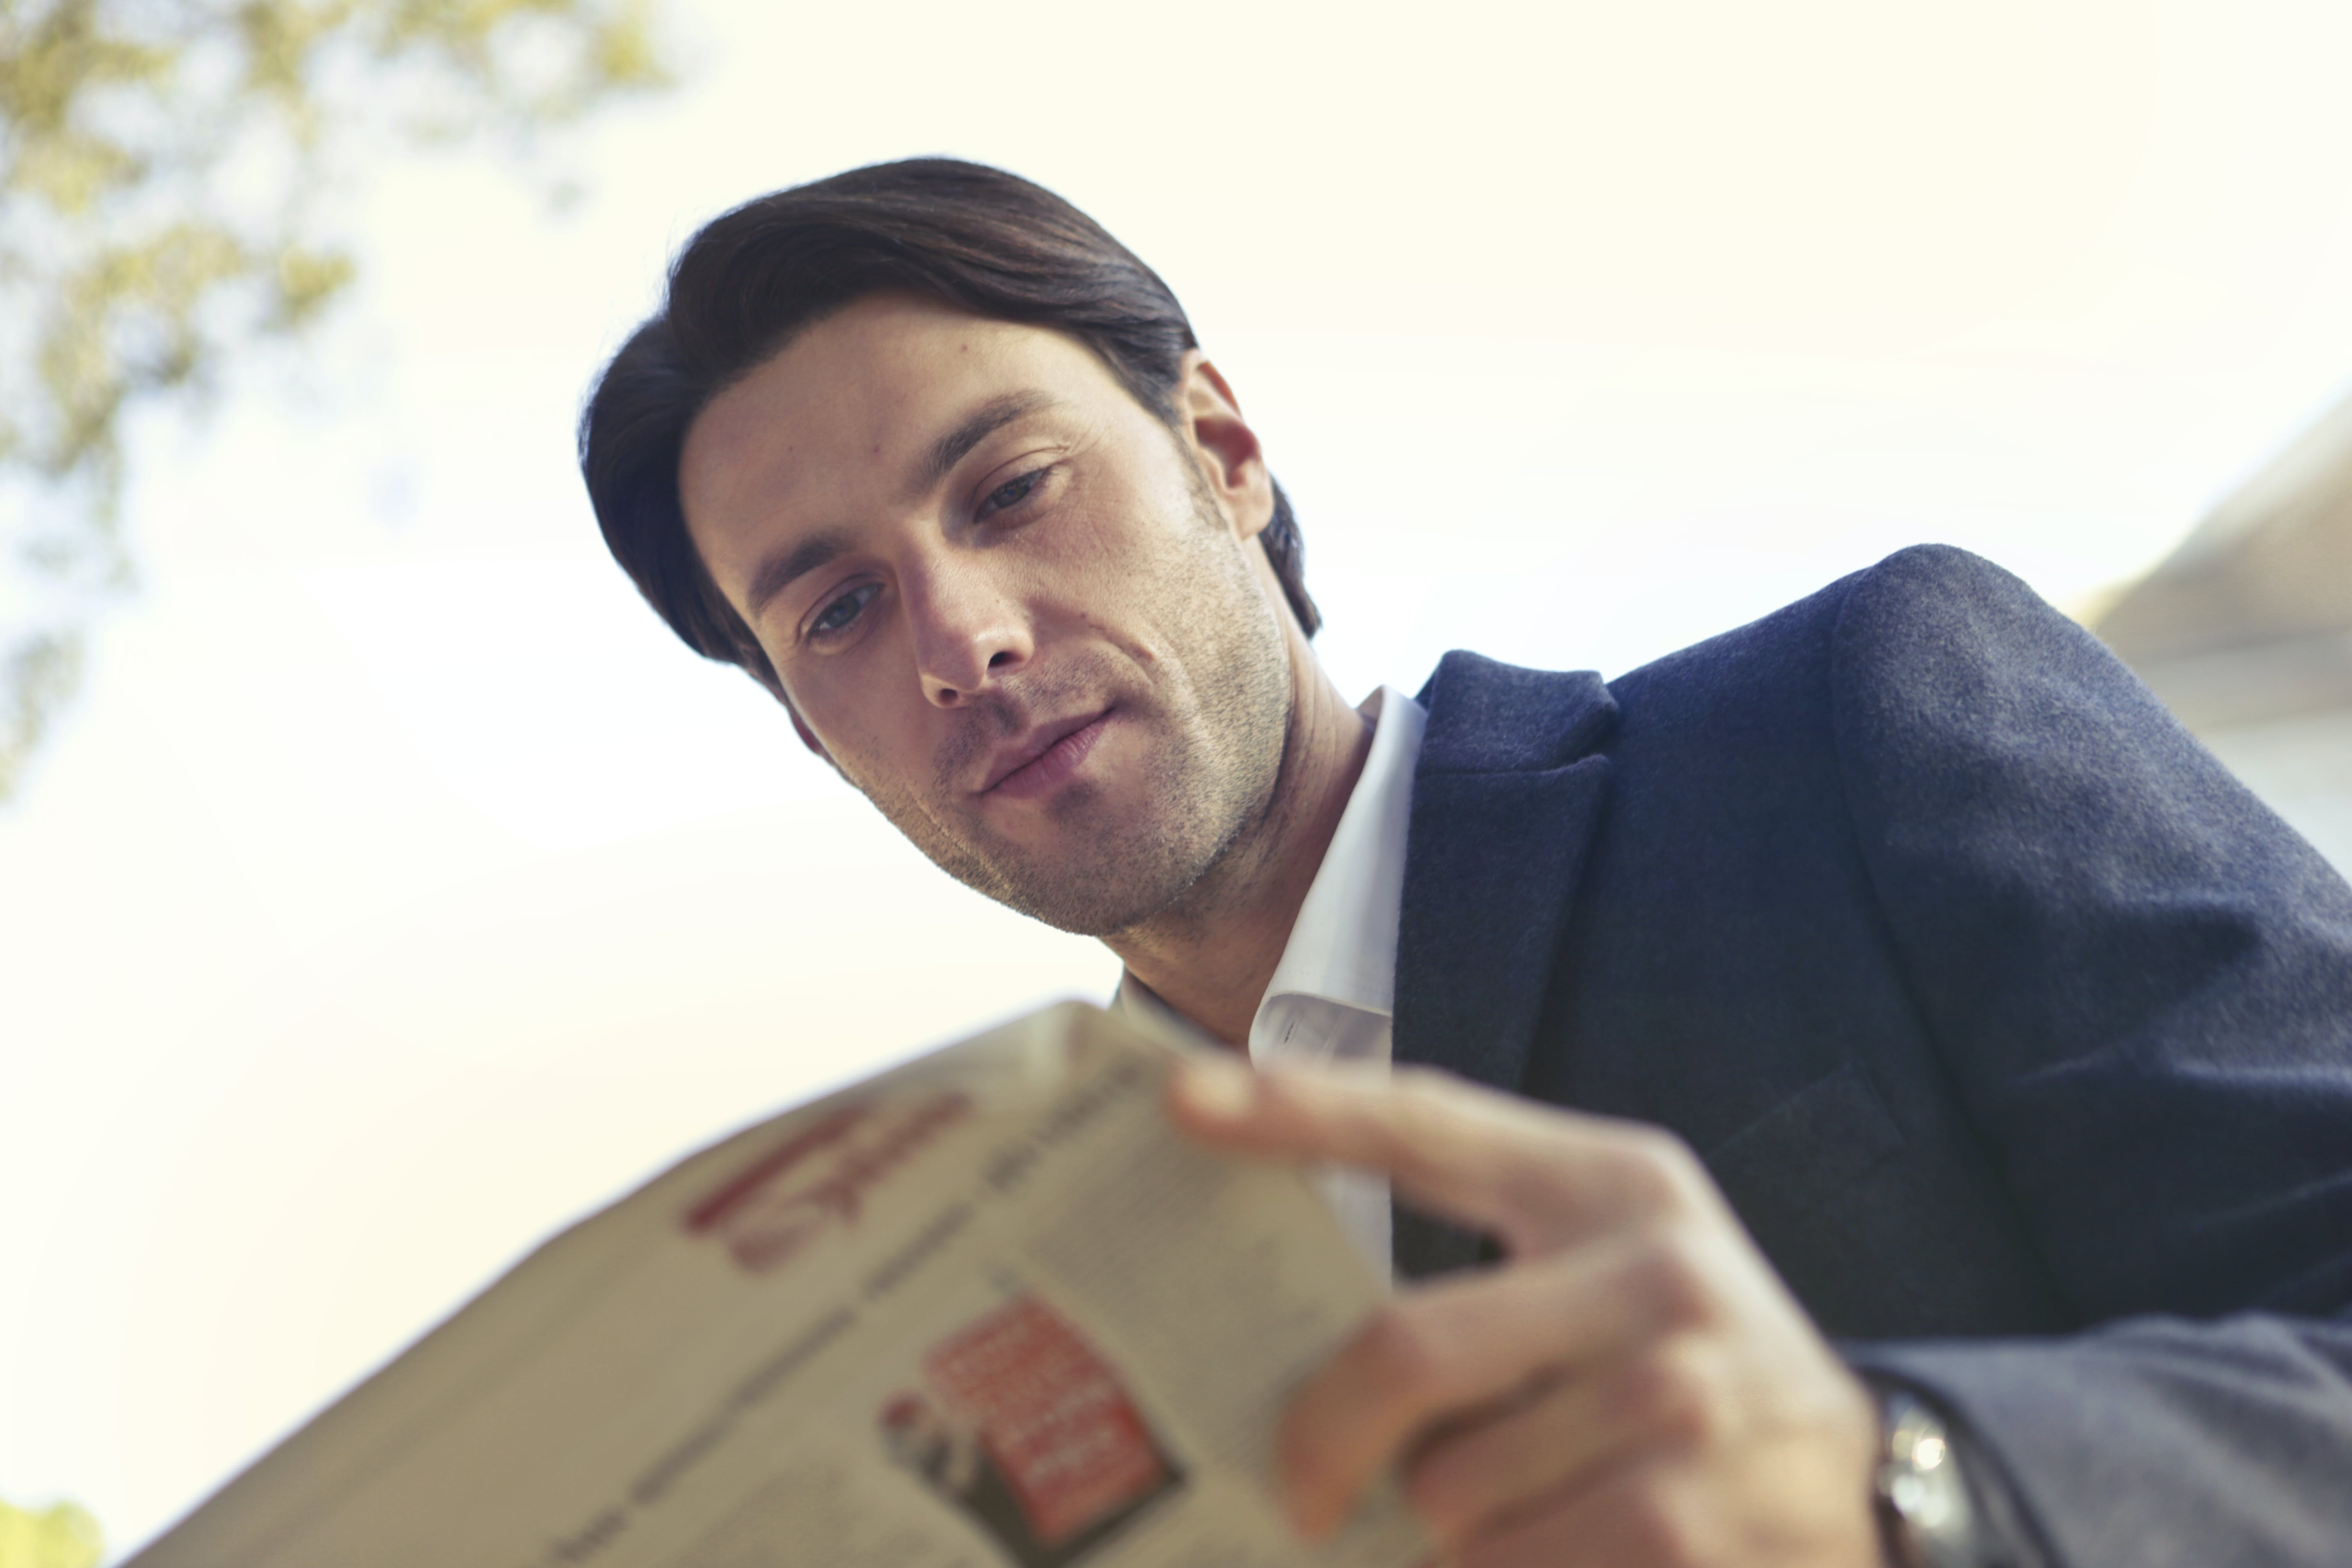 Low Angle Shot of Man Reading Newspaper